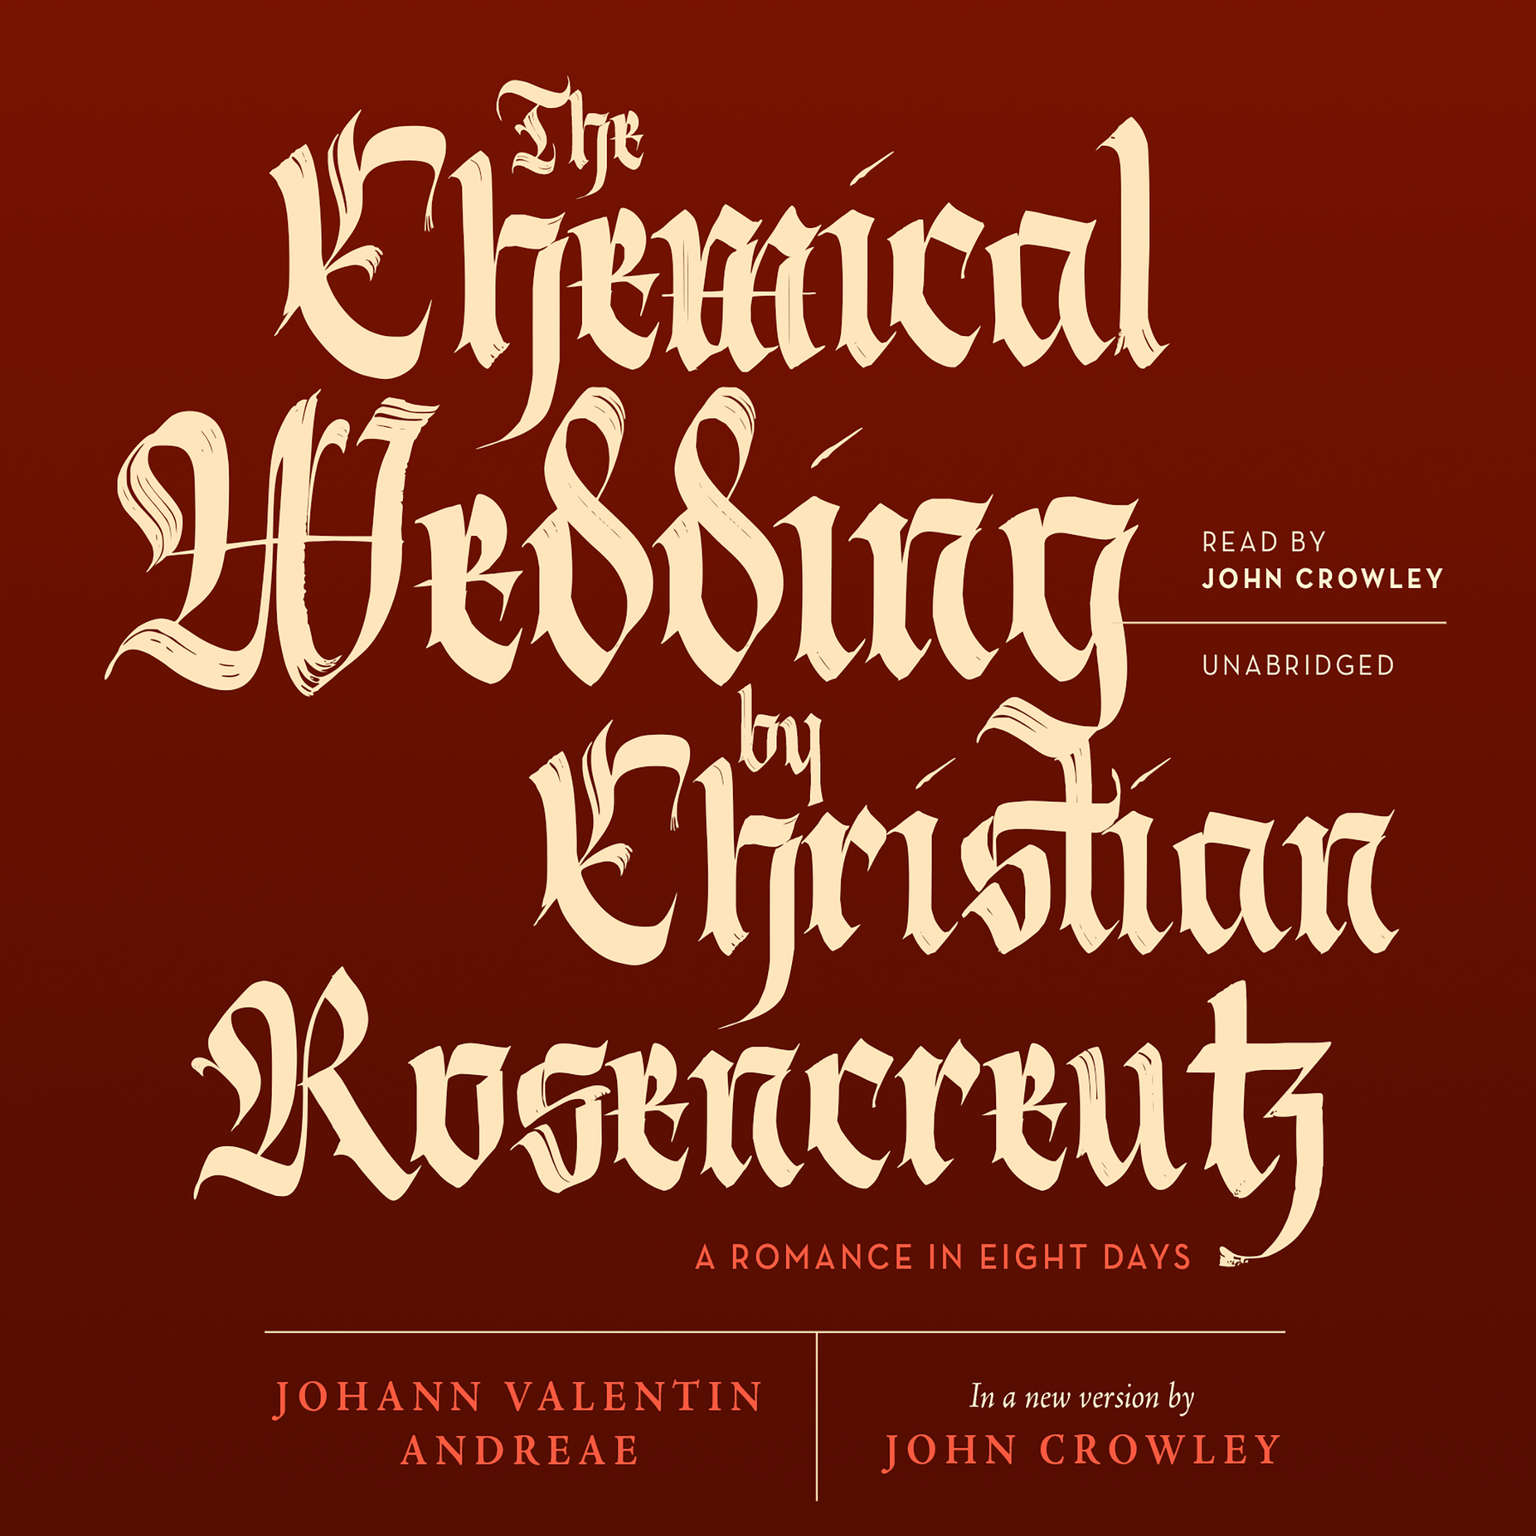 Printable The Chemical Wedding by Christian Rosencreutz: A Romance in Eight Days Audiobook Cover Art